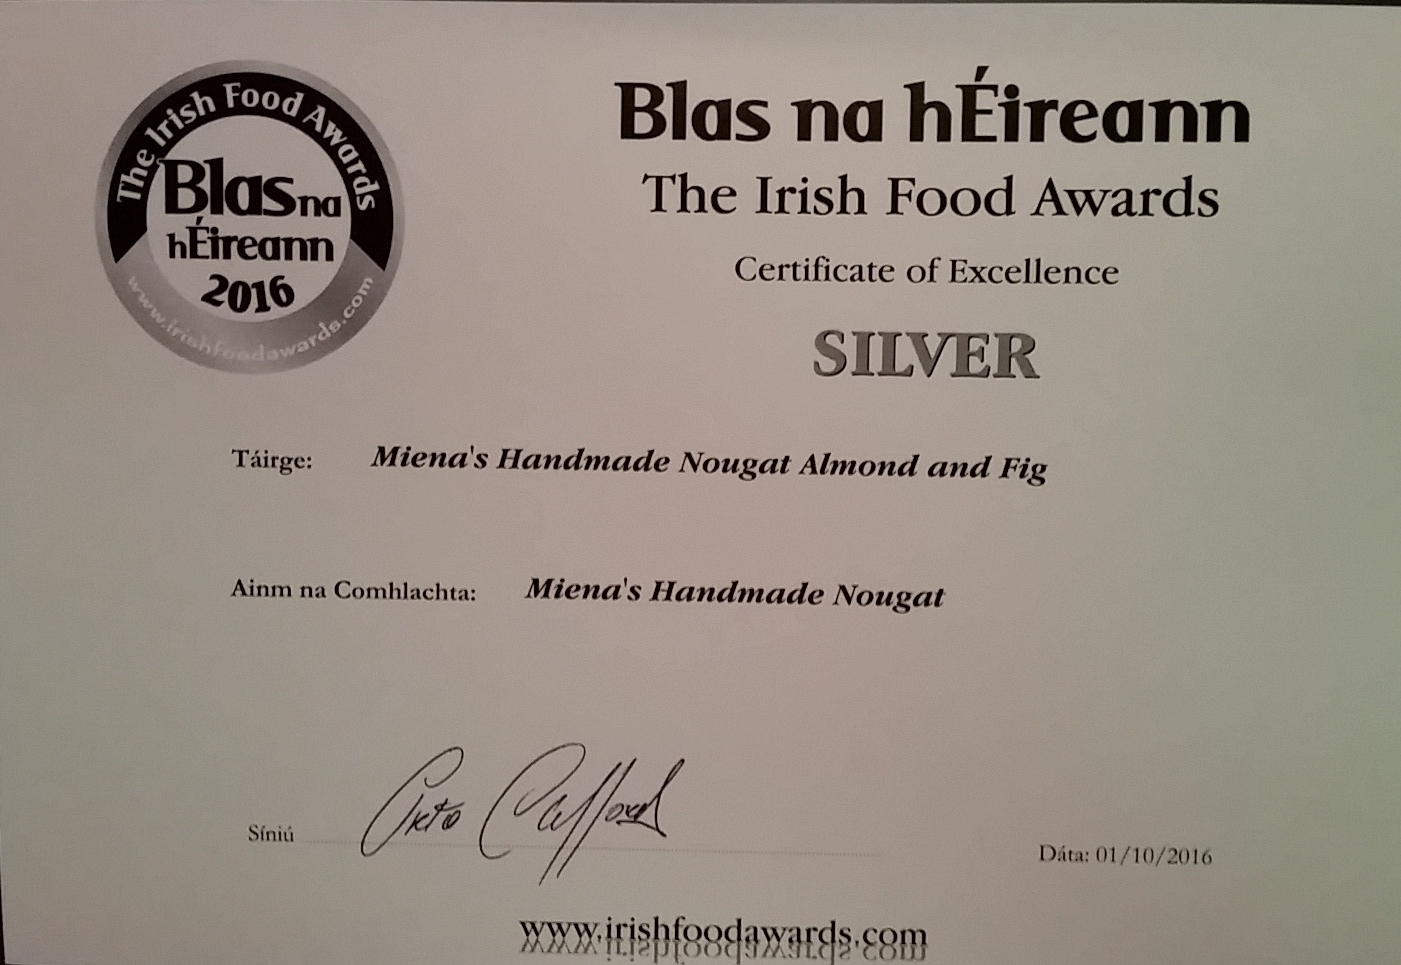 And look who got another Award!! - Almond and Fig again!!